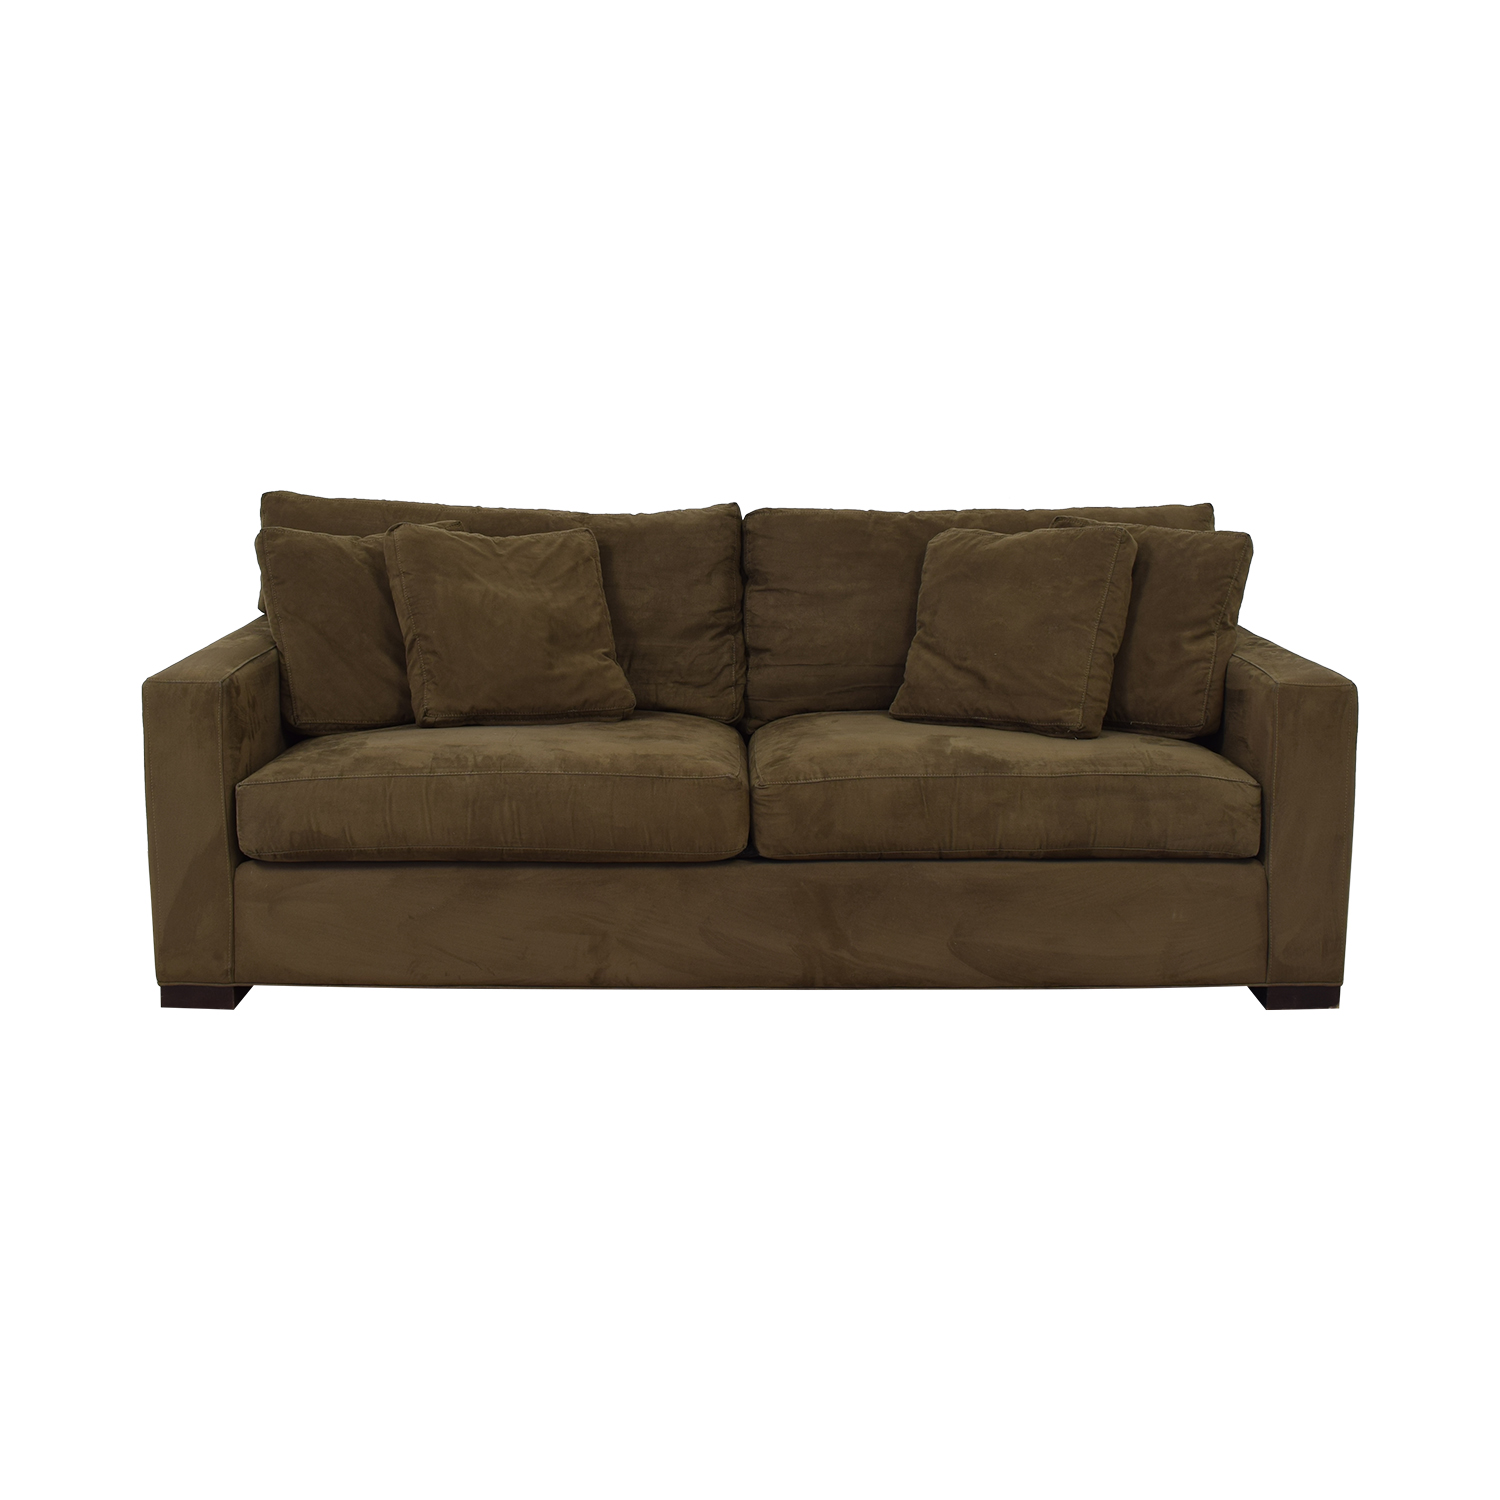 shop Crate & Barrel Crate & Barrel Axis II Sofa online